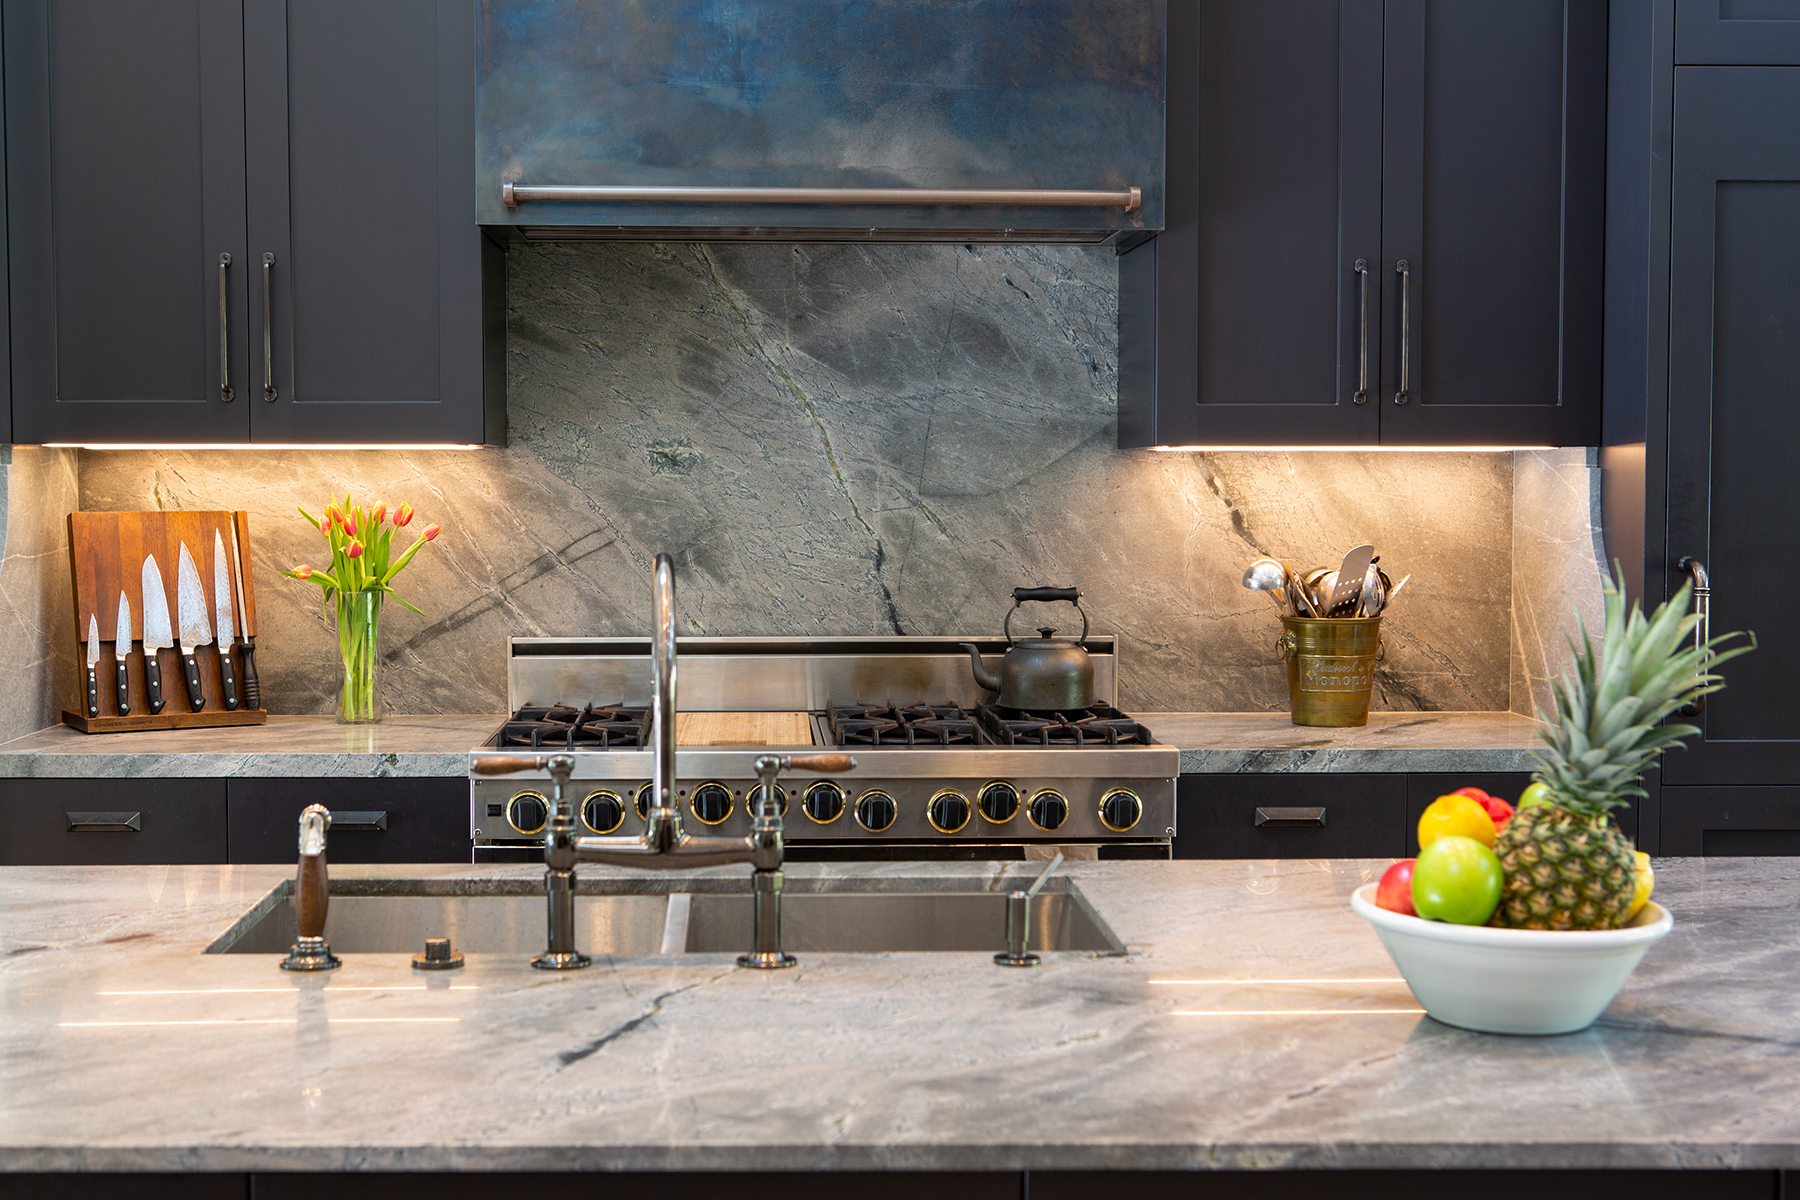 kitchen counter and hood.jpg